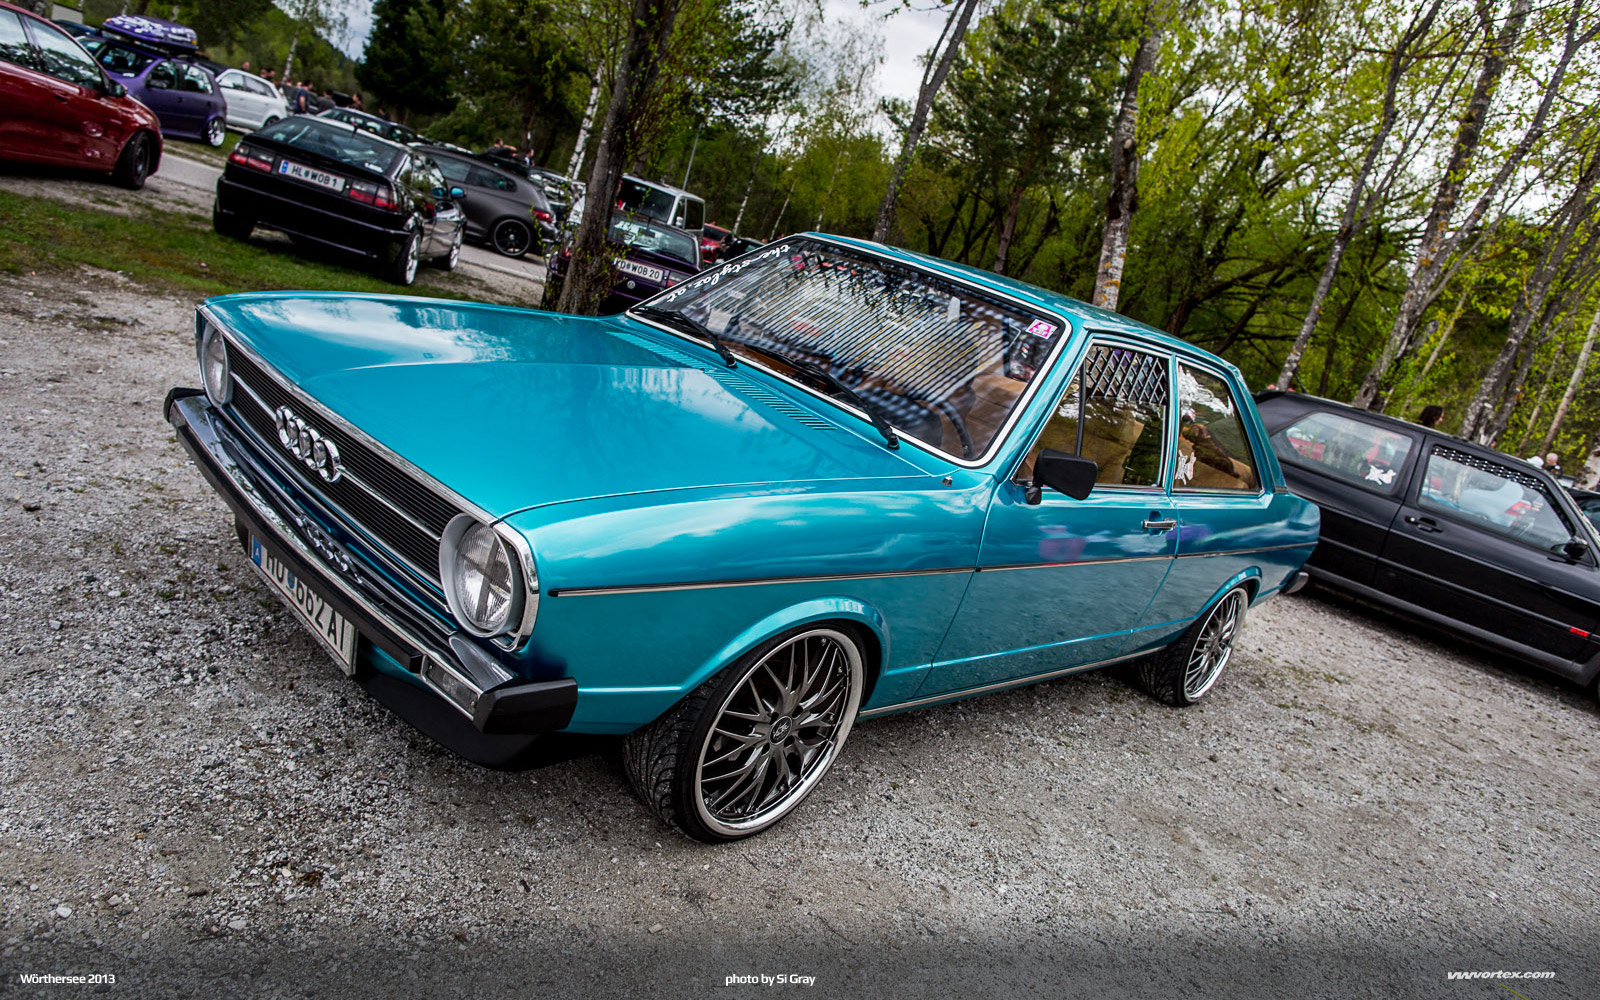 http://www.vwvortex.com/wp-content/uploads/2013/05/worthersee-2013-gallery-si-gray-044.jpg